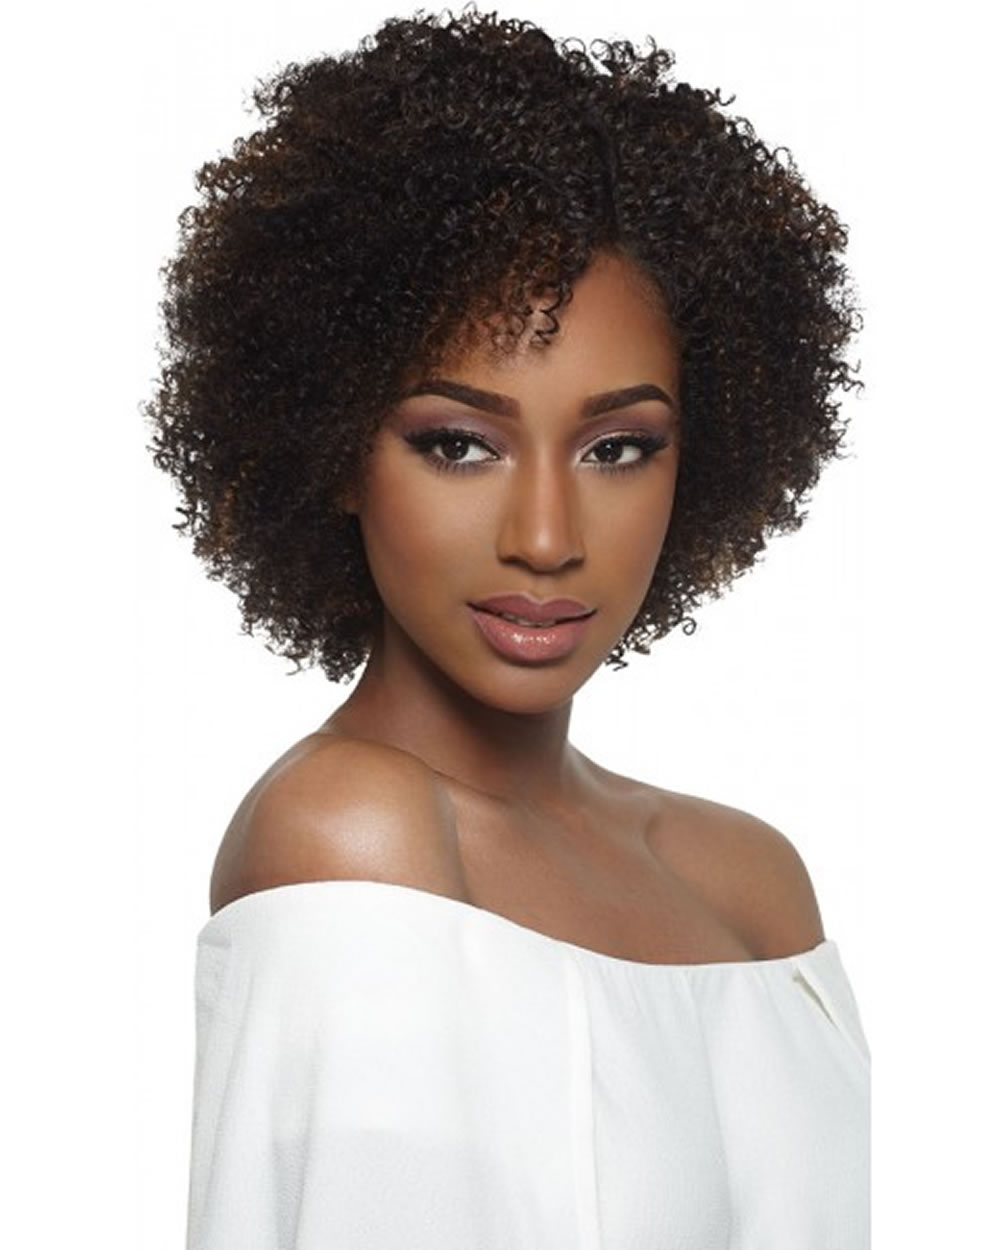 Short Natural Hairstyles 2019 -African American Girl